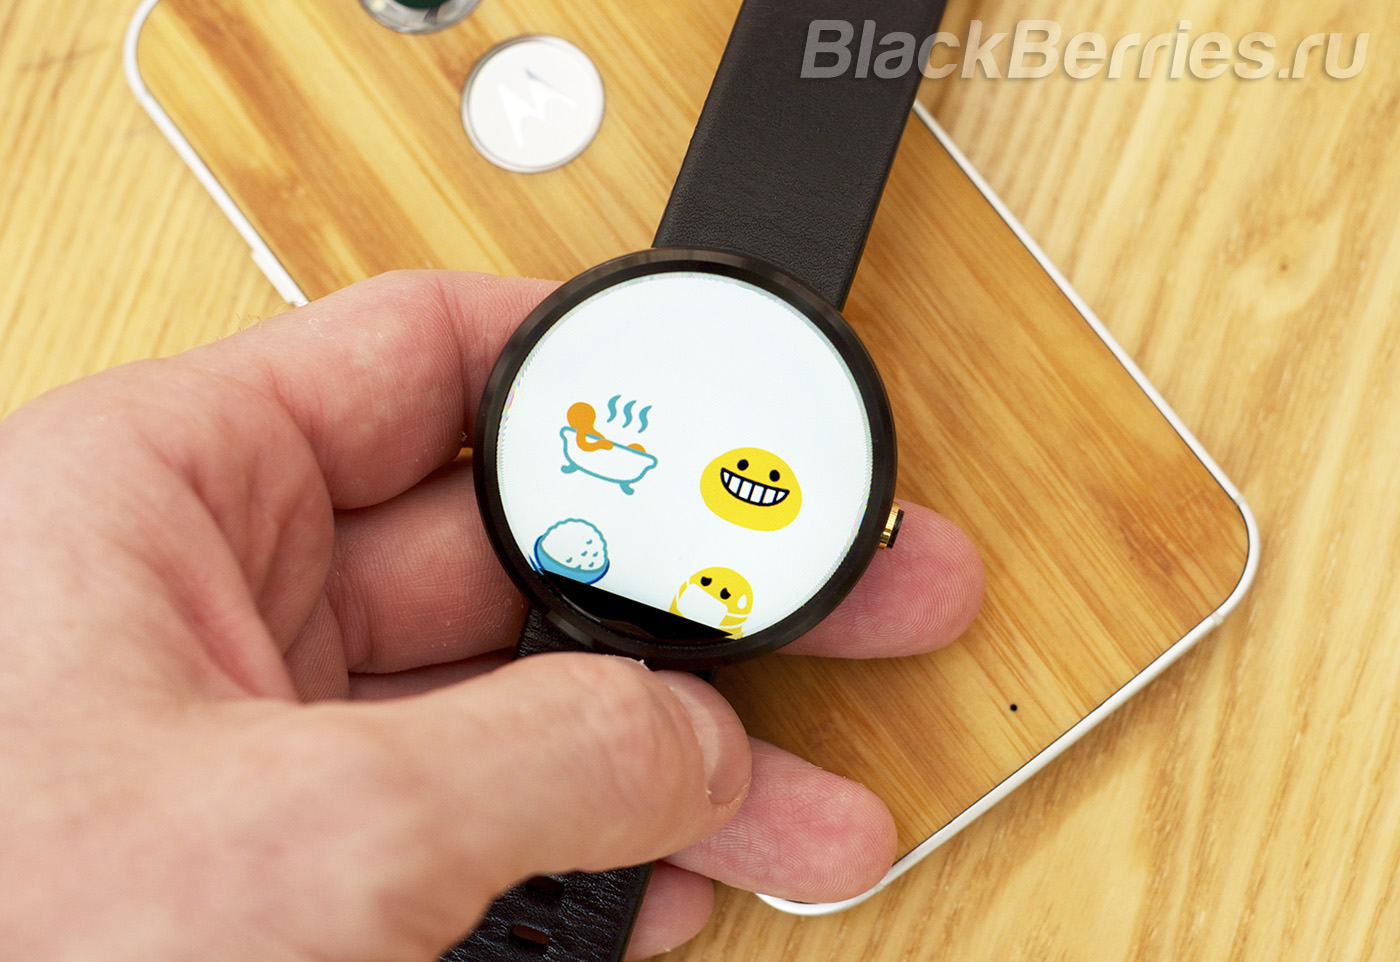 BlackBerry-BBM-Android-Wear-09